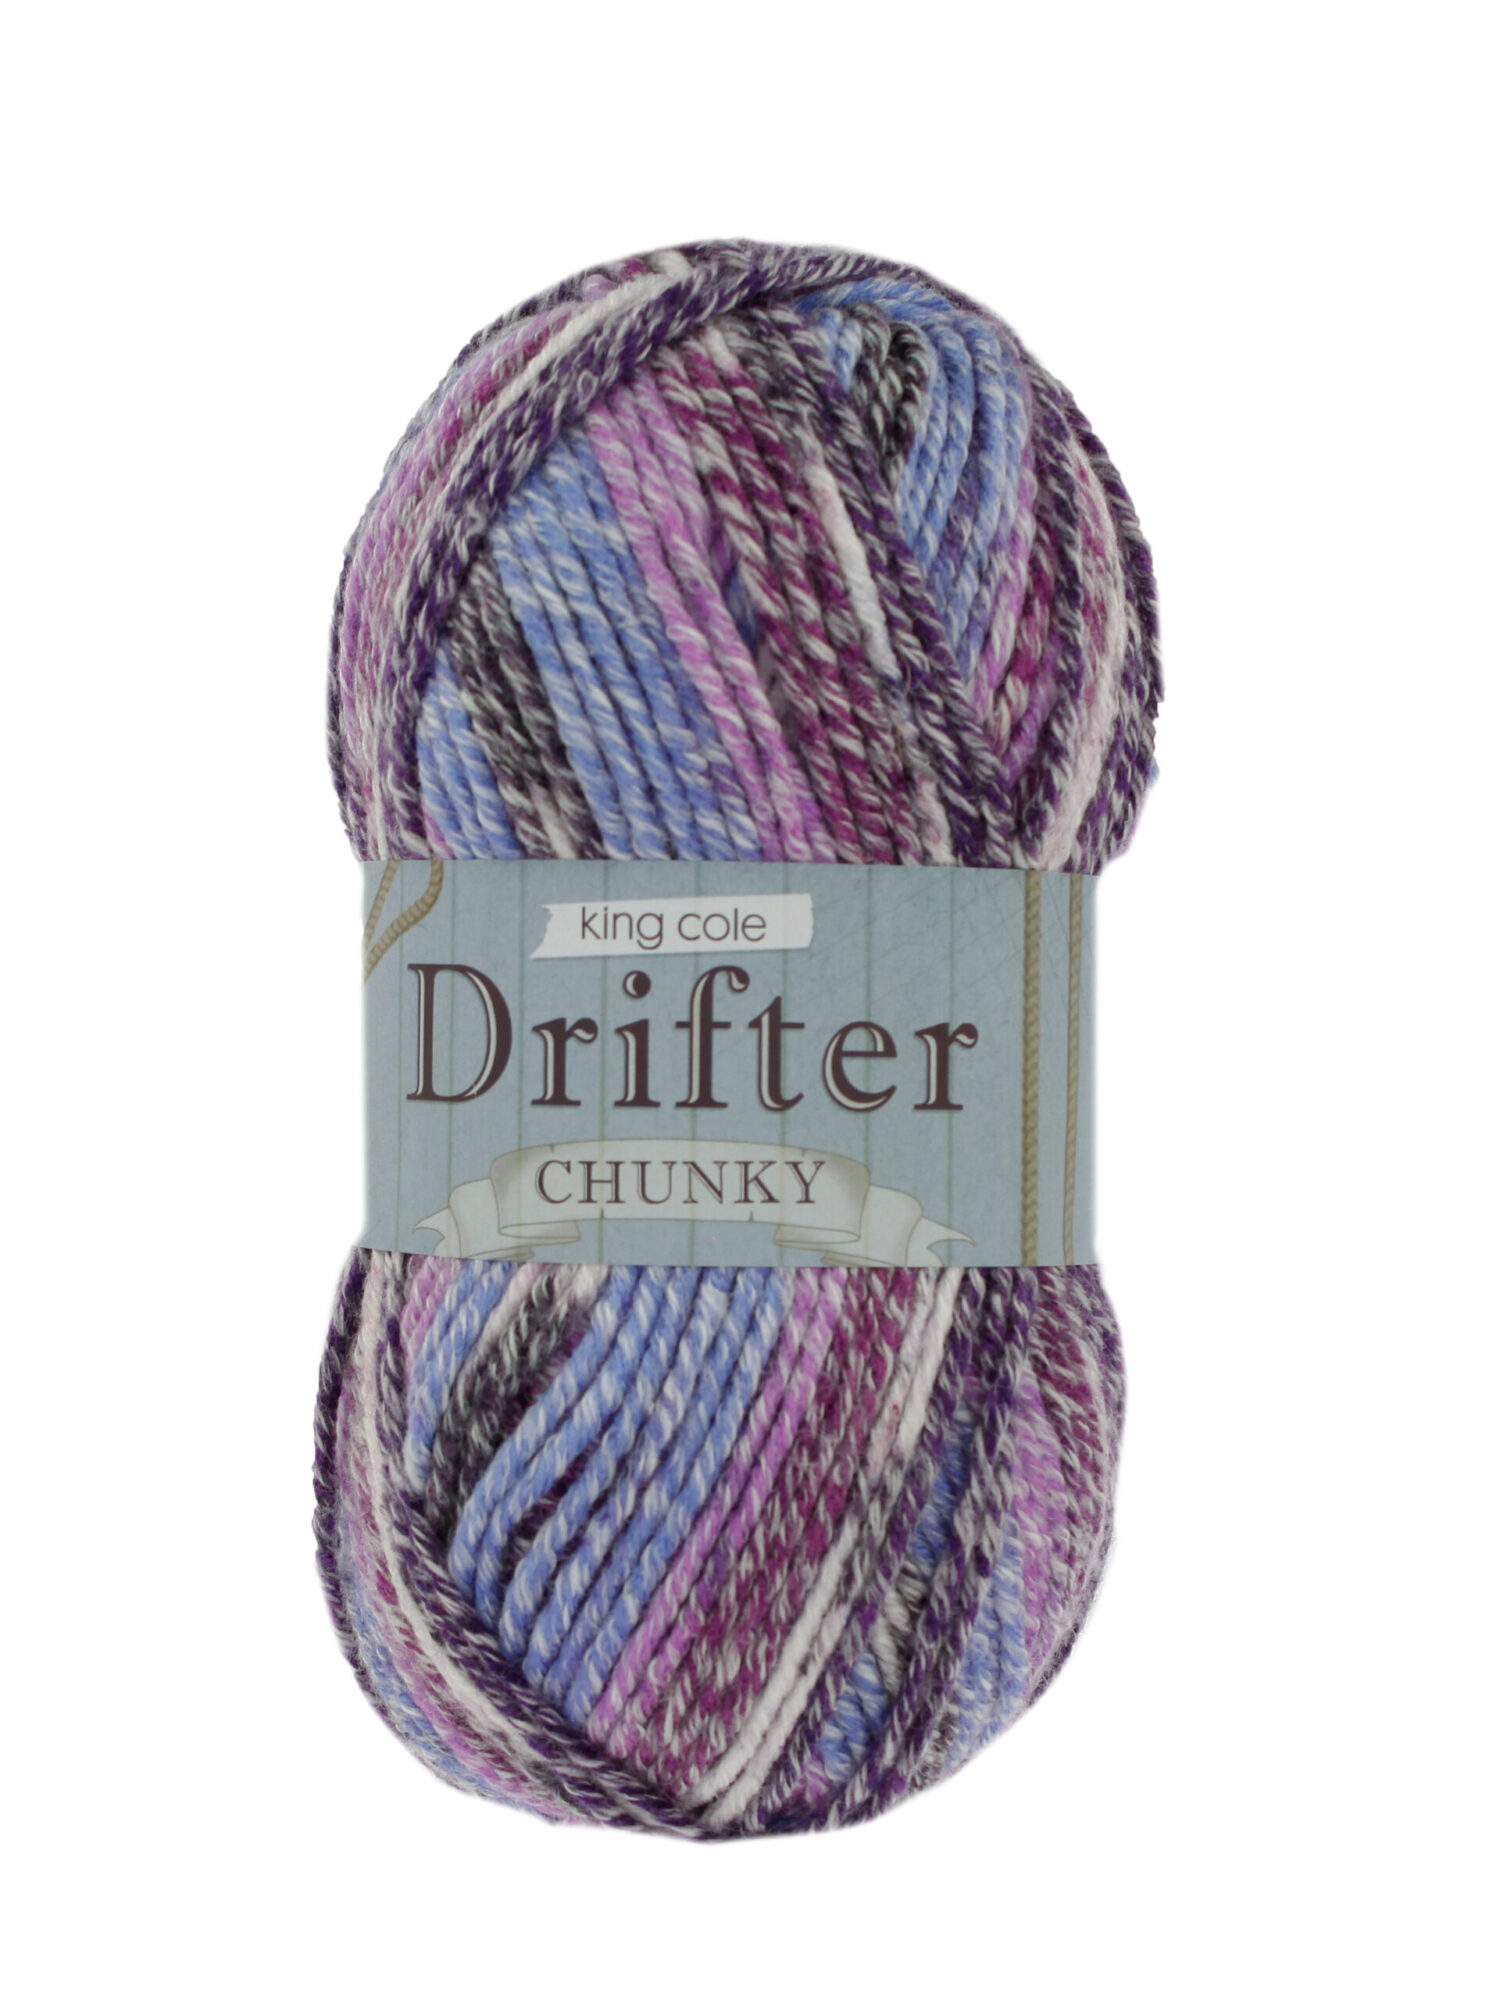 King Cole Drifter Chunky product image